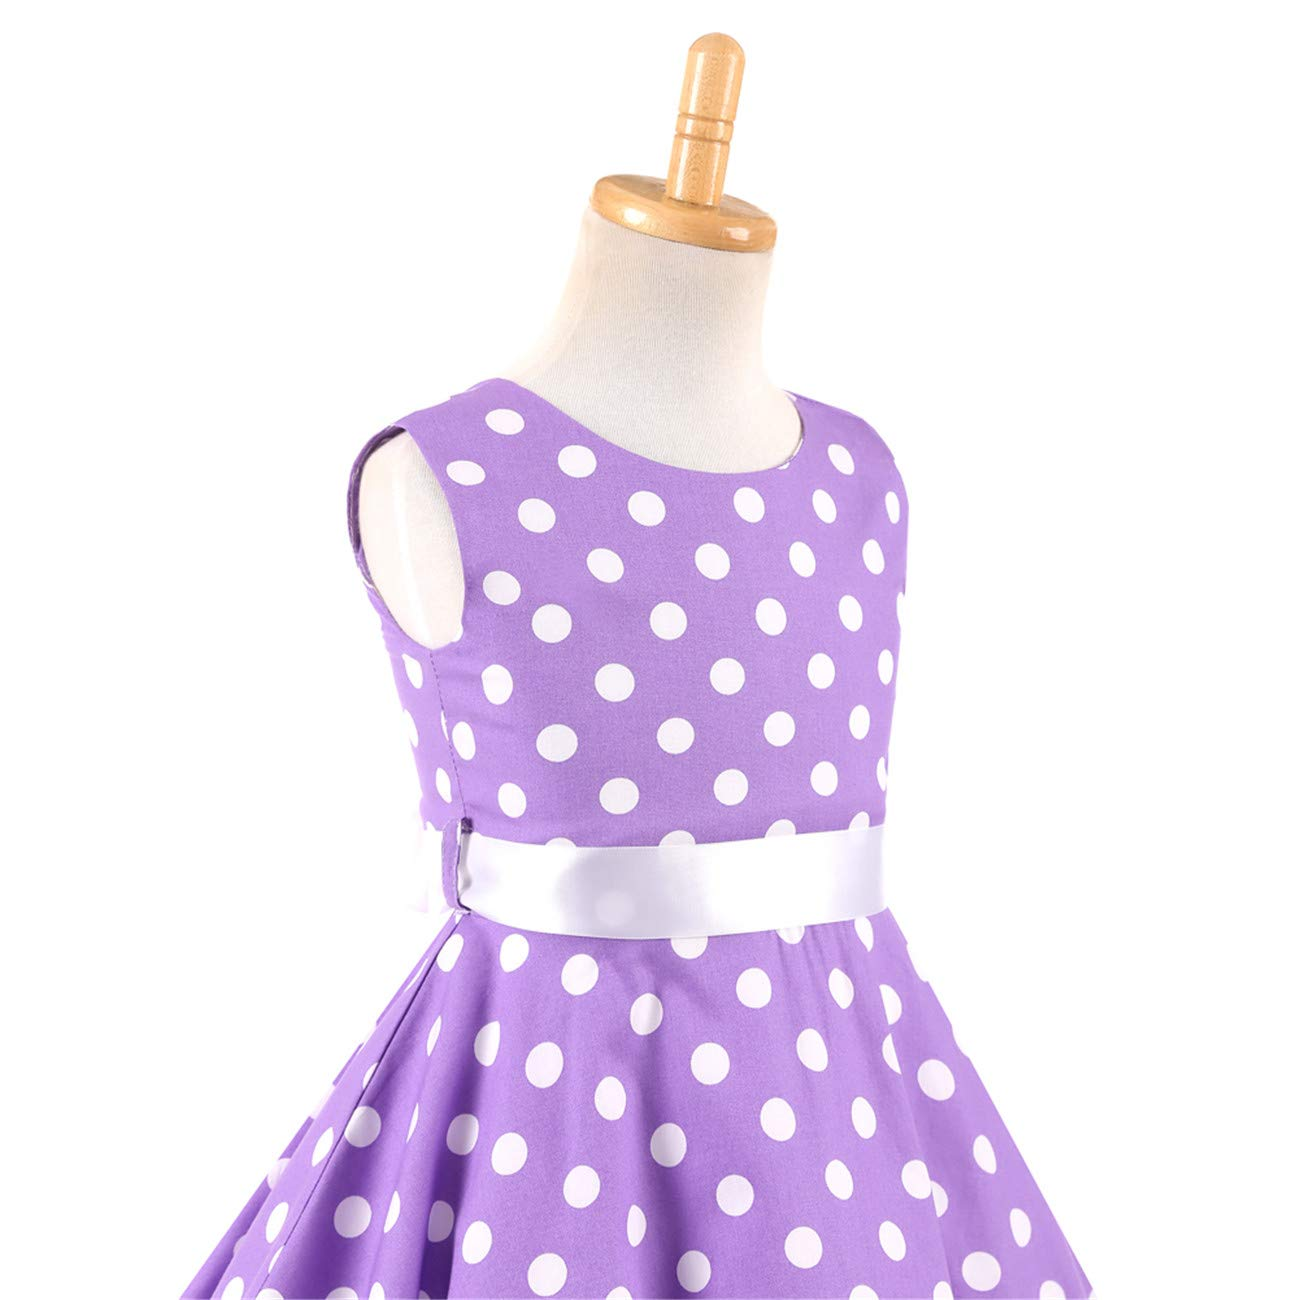 Girls Sleeveless Summer Swing Casual Clothes Vintage Floral Print Polka Dot Dress for 4-12Years